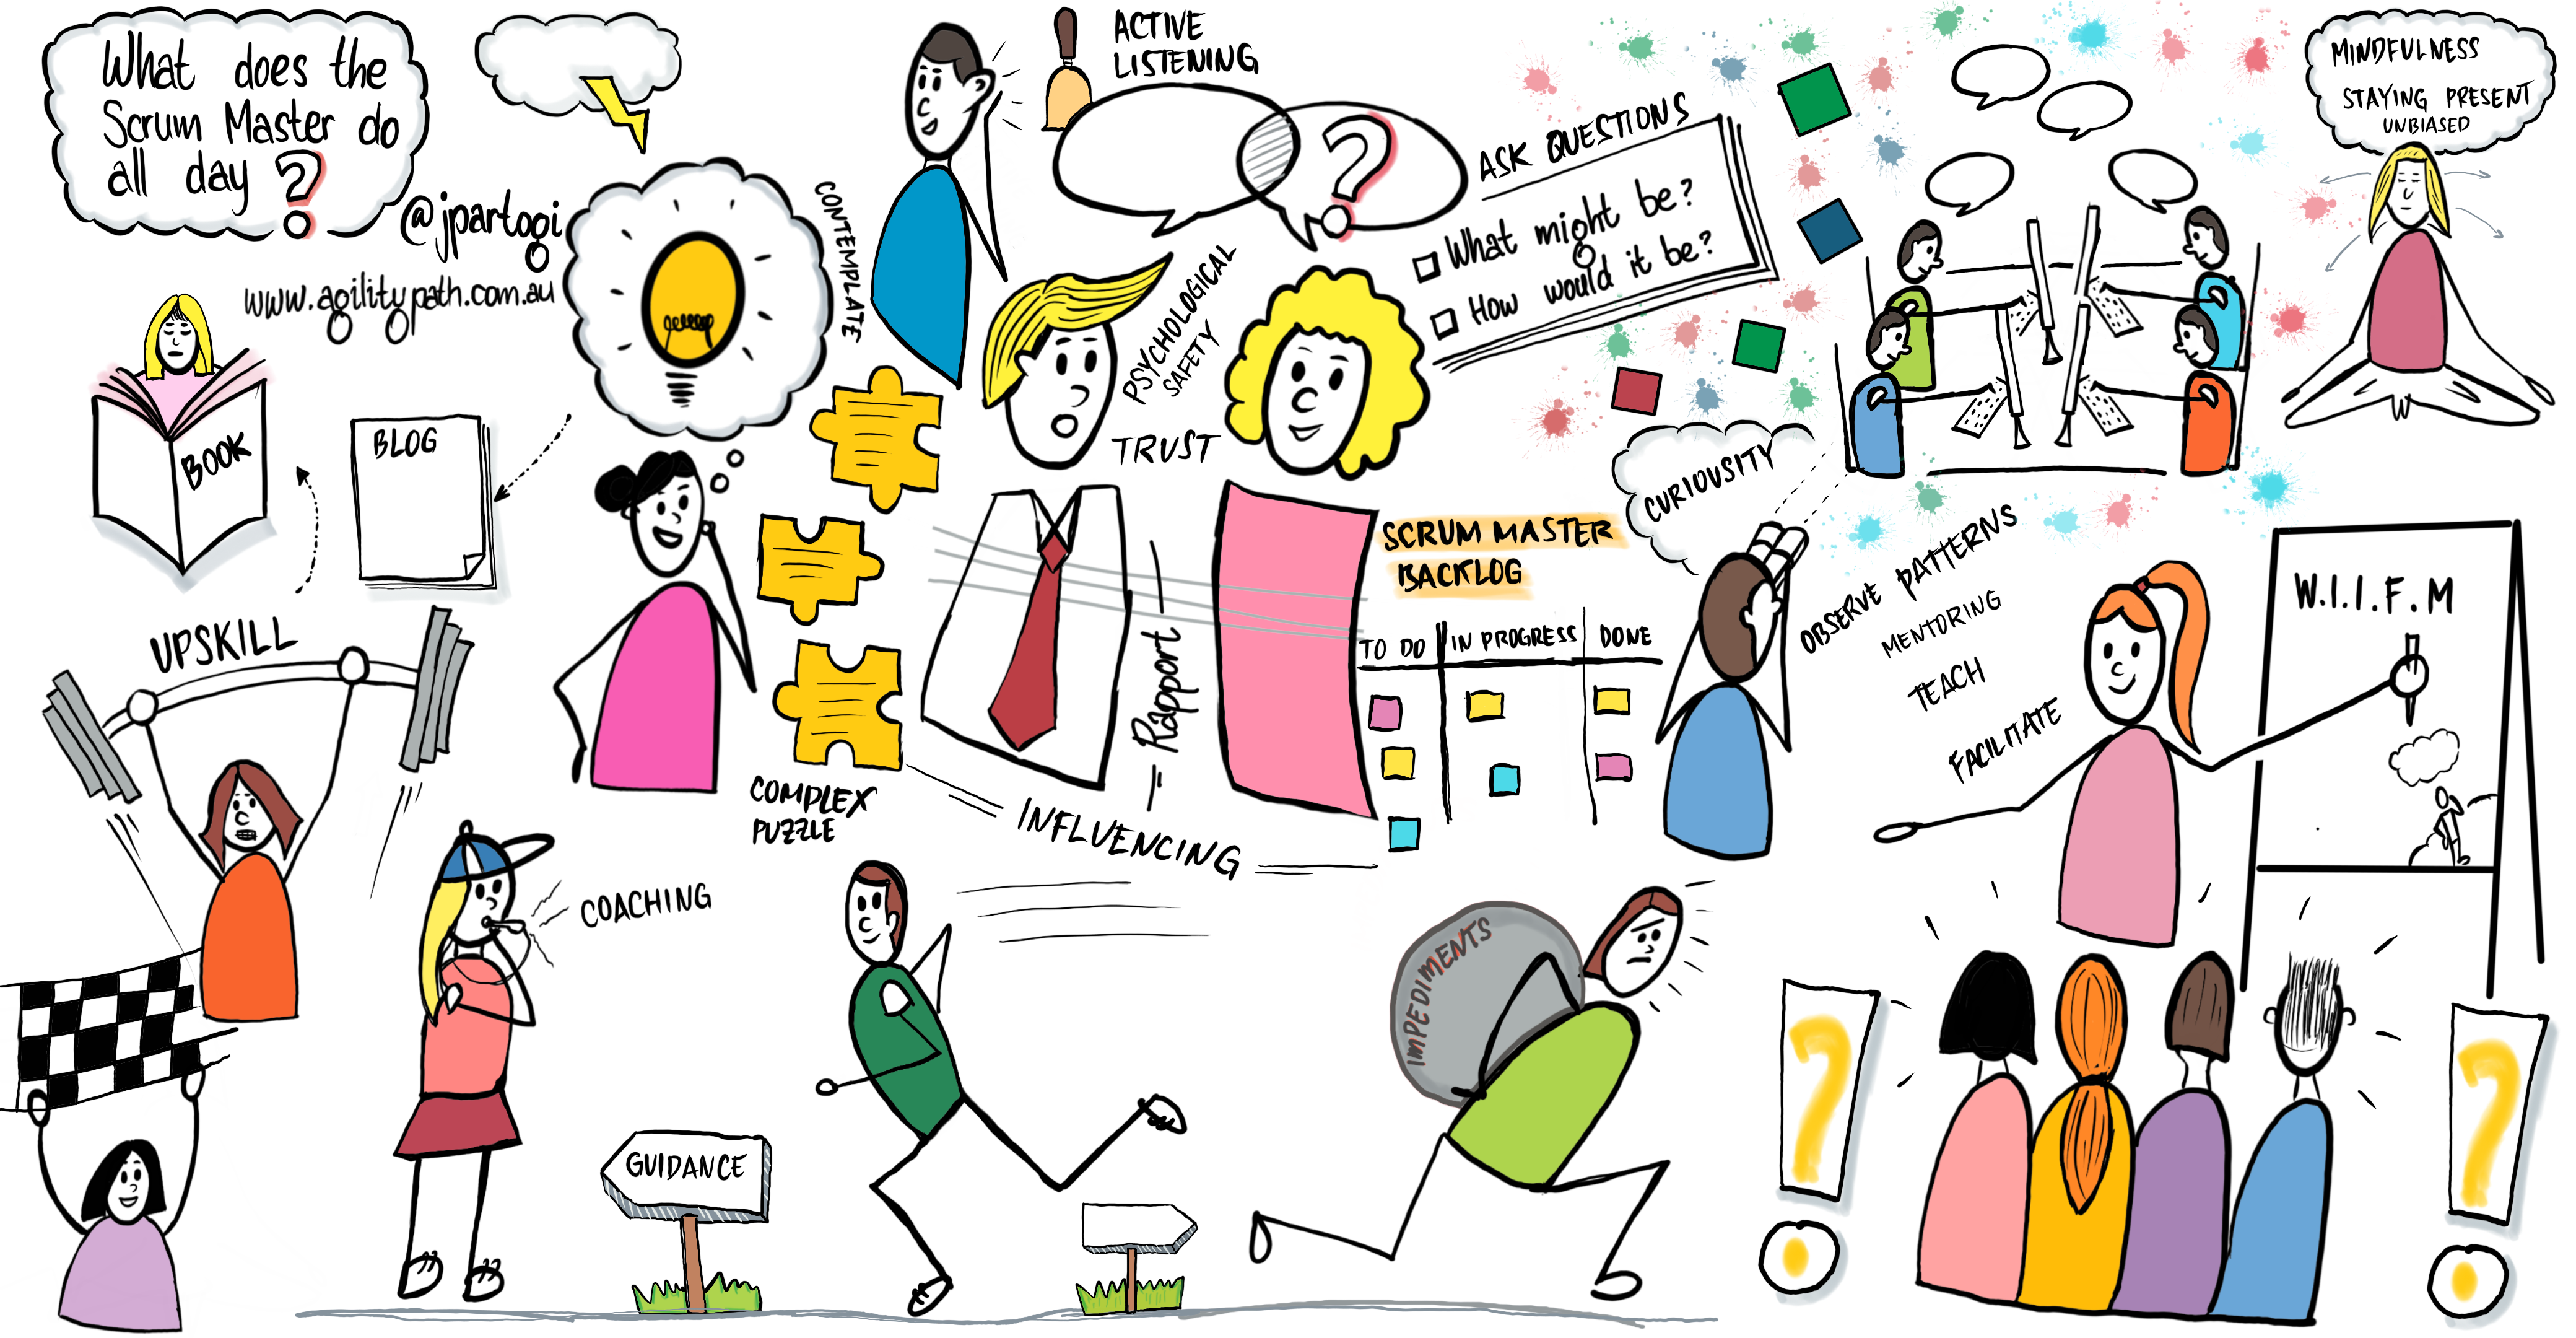 Image of what a scrum master role involves on a daily basis